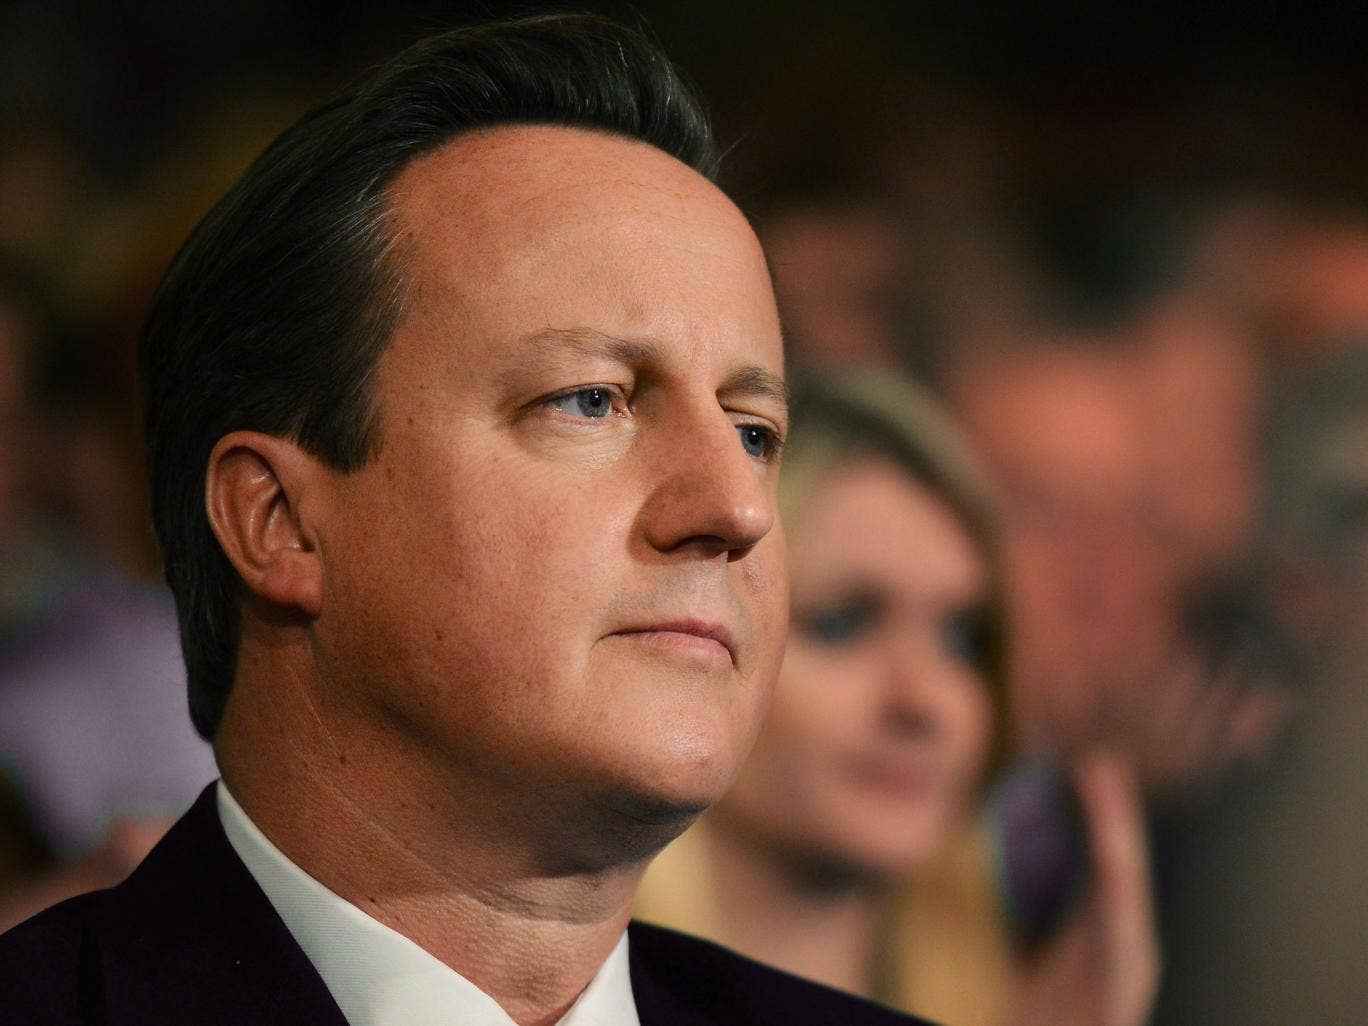 Cameron's party is perceived by a majority of the public to only represent the interests of the rich